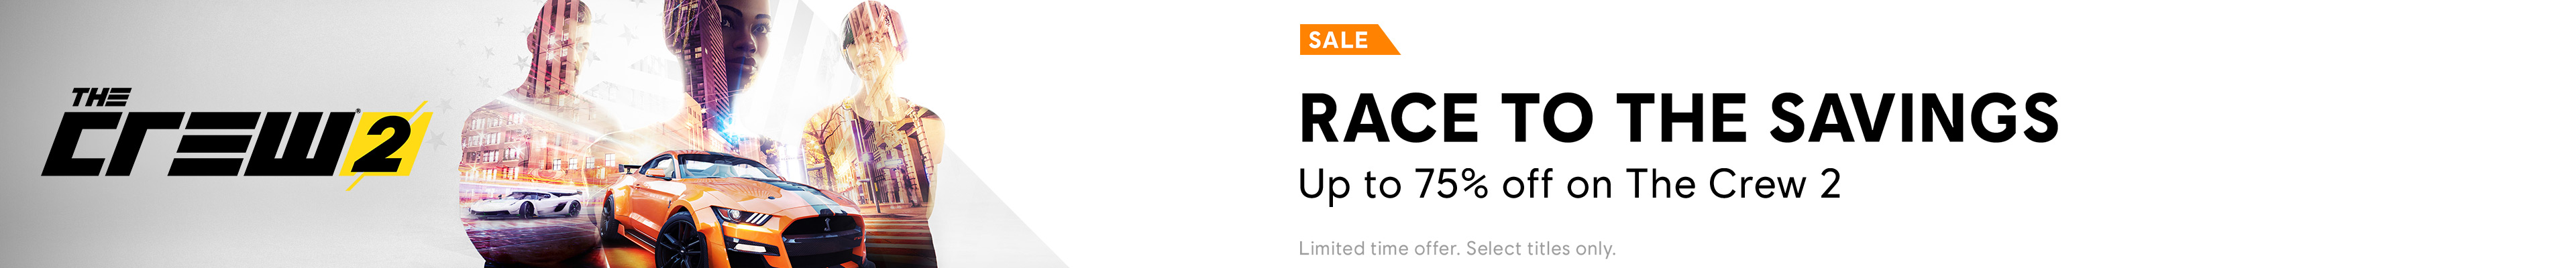 The Crew 2 Sale Category banner